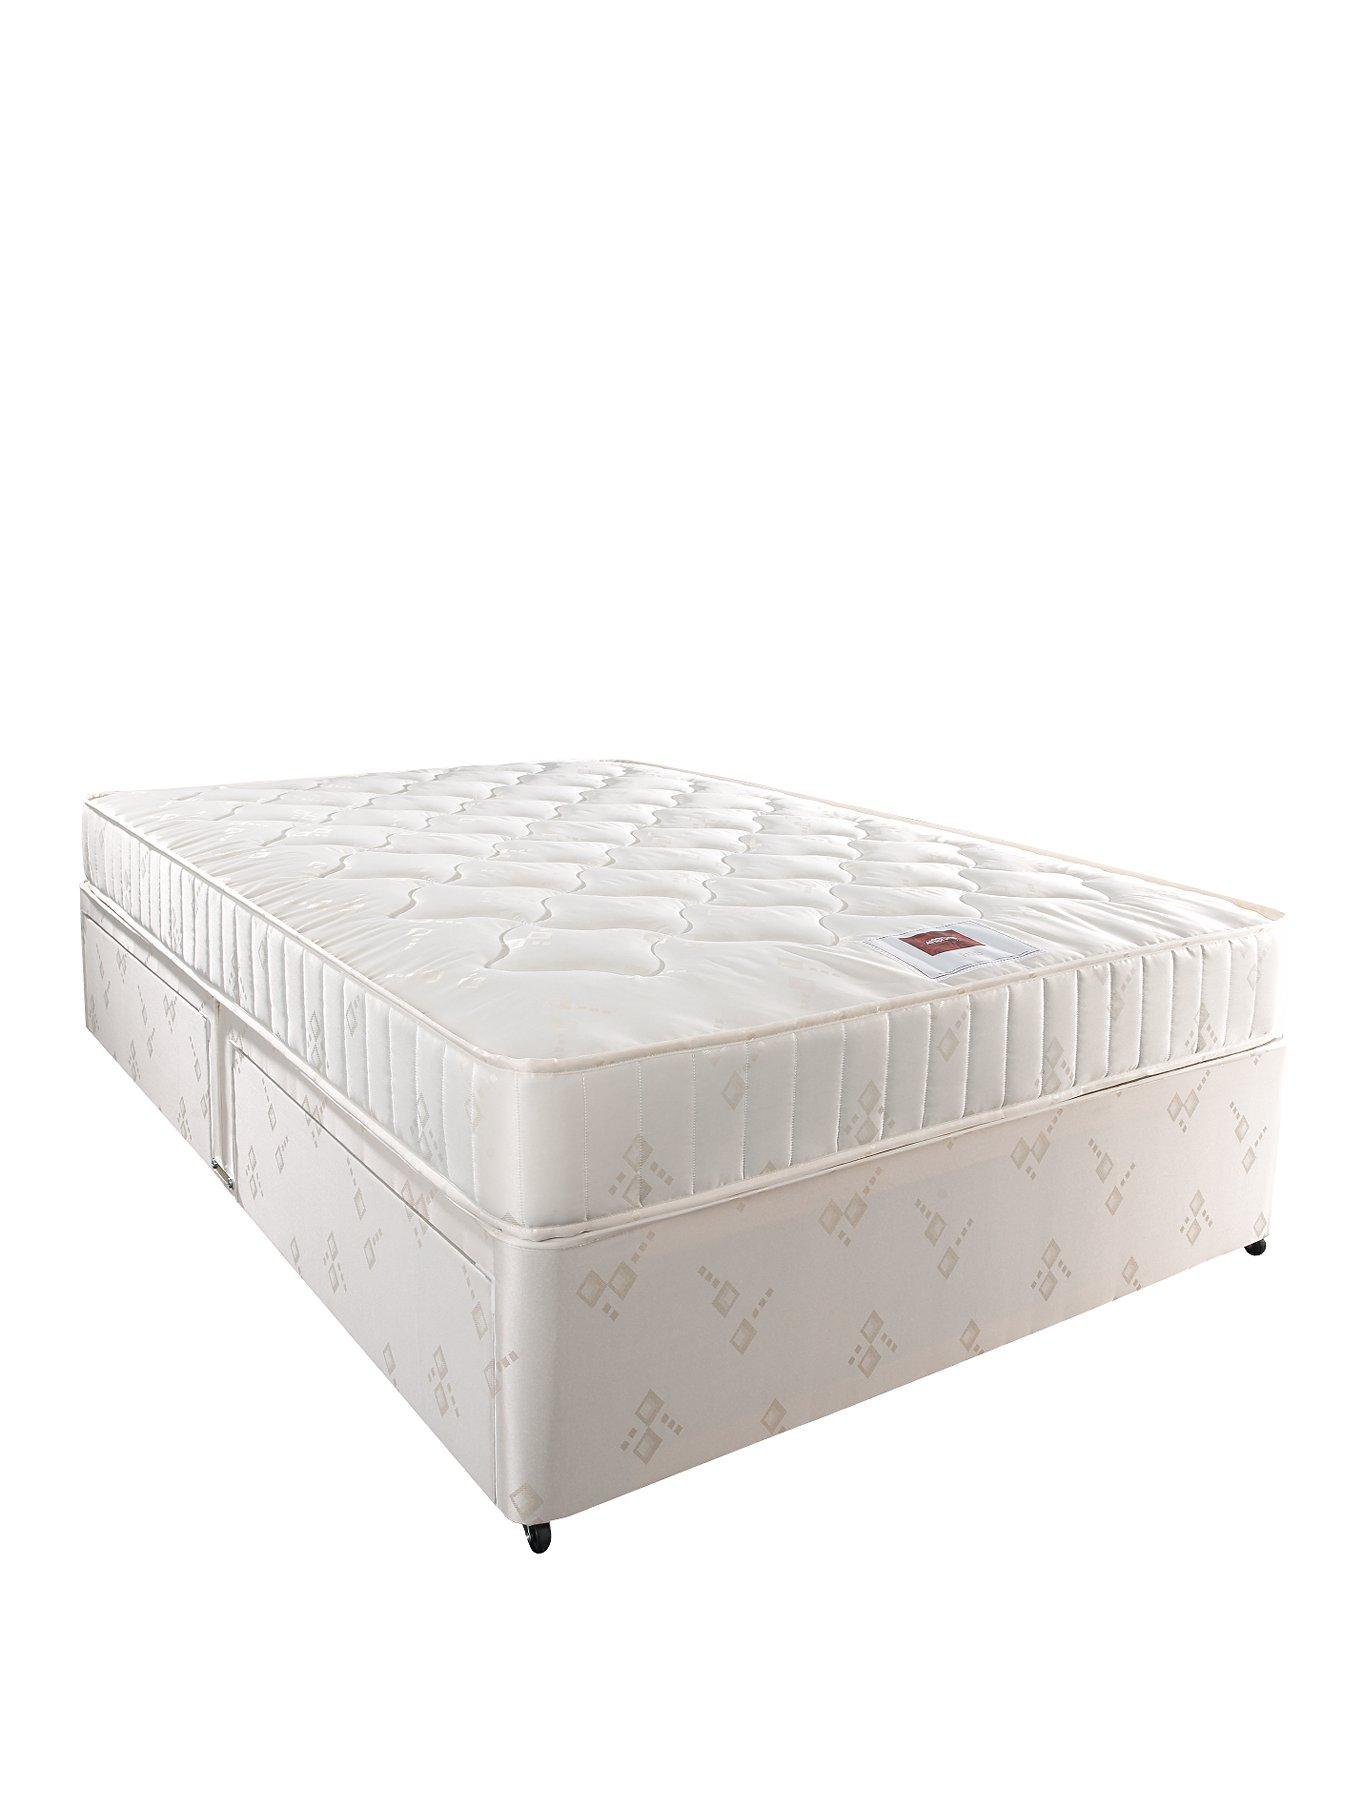 Picture of: Single Mattress Single Mattress Littlewoods